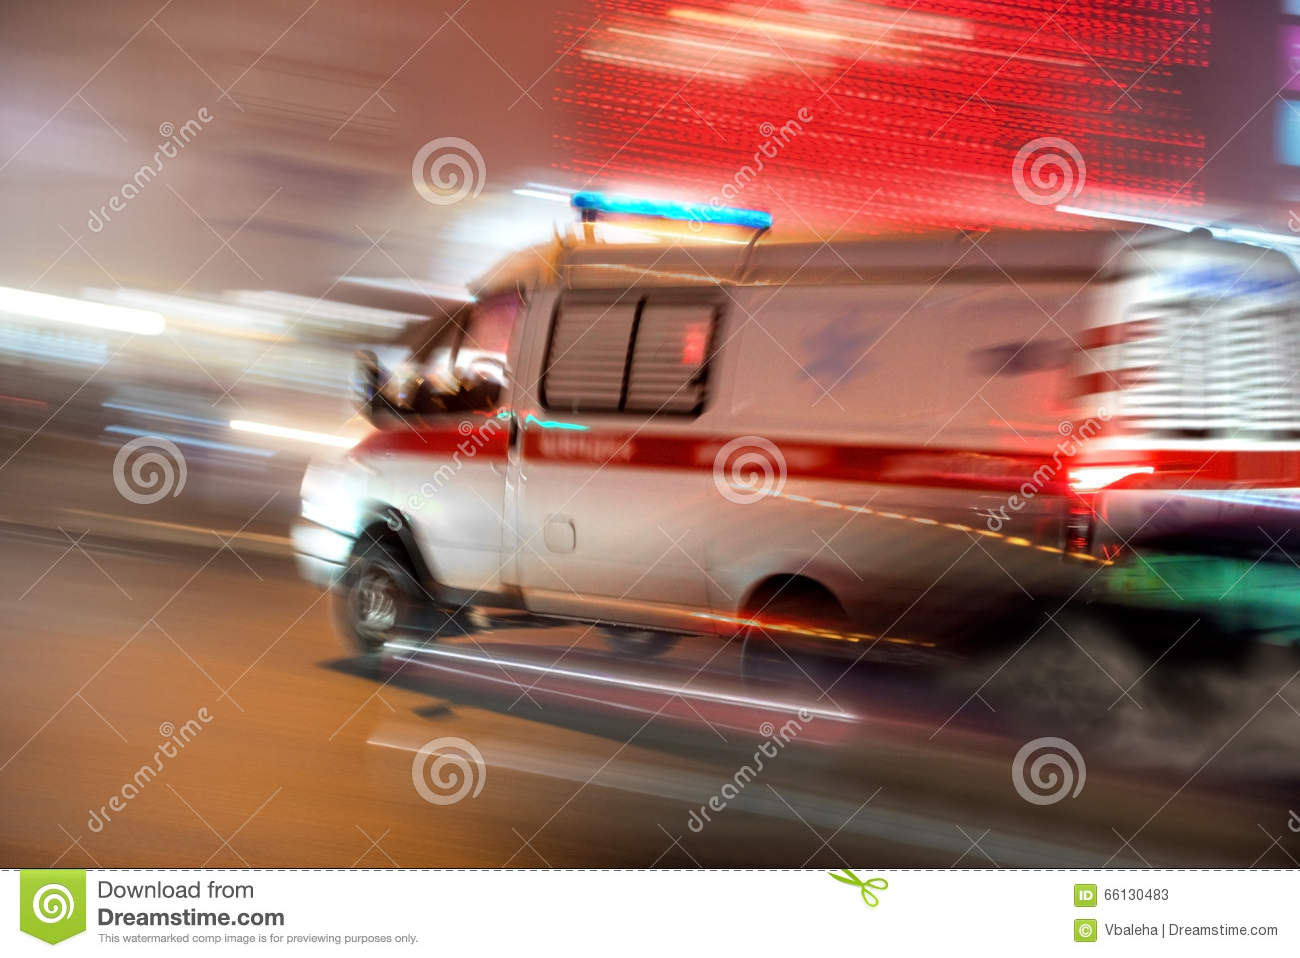 Ambulance in motion